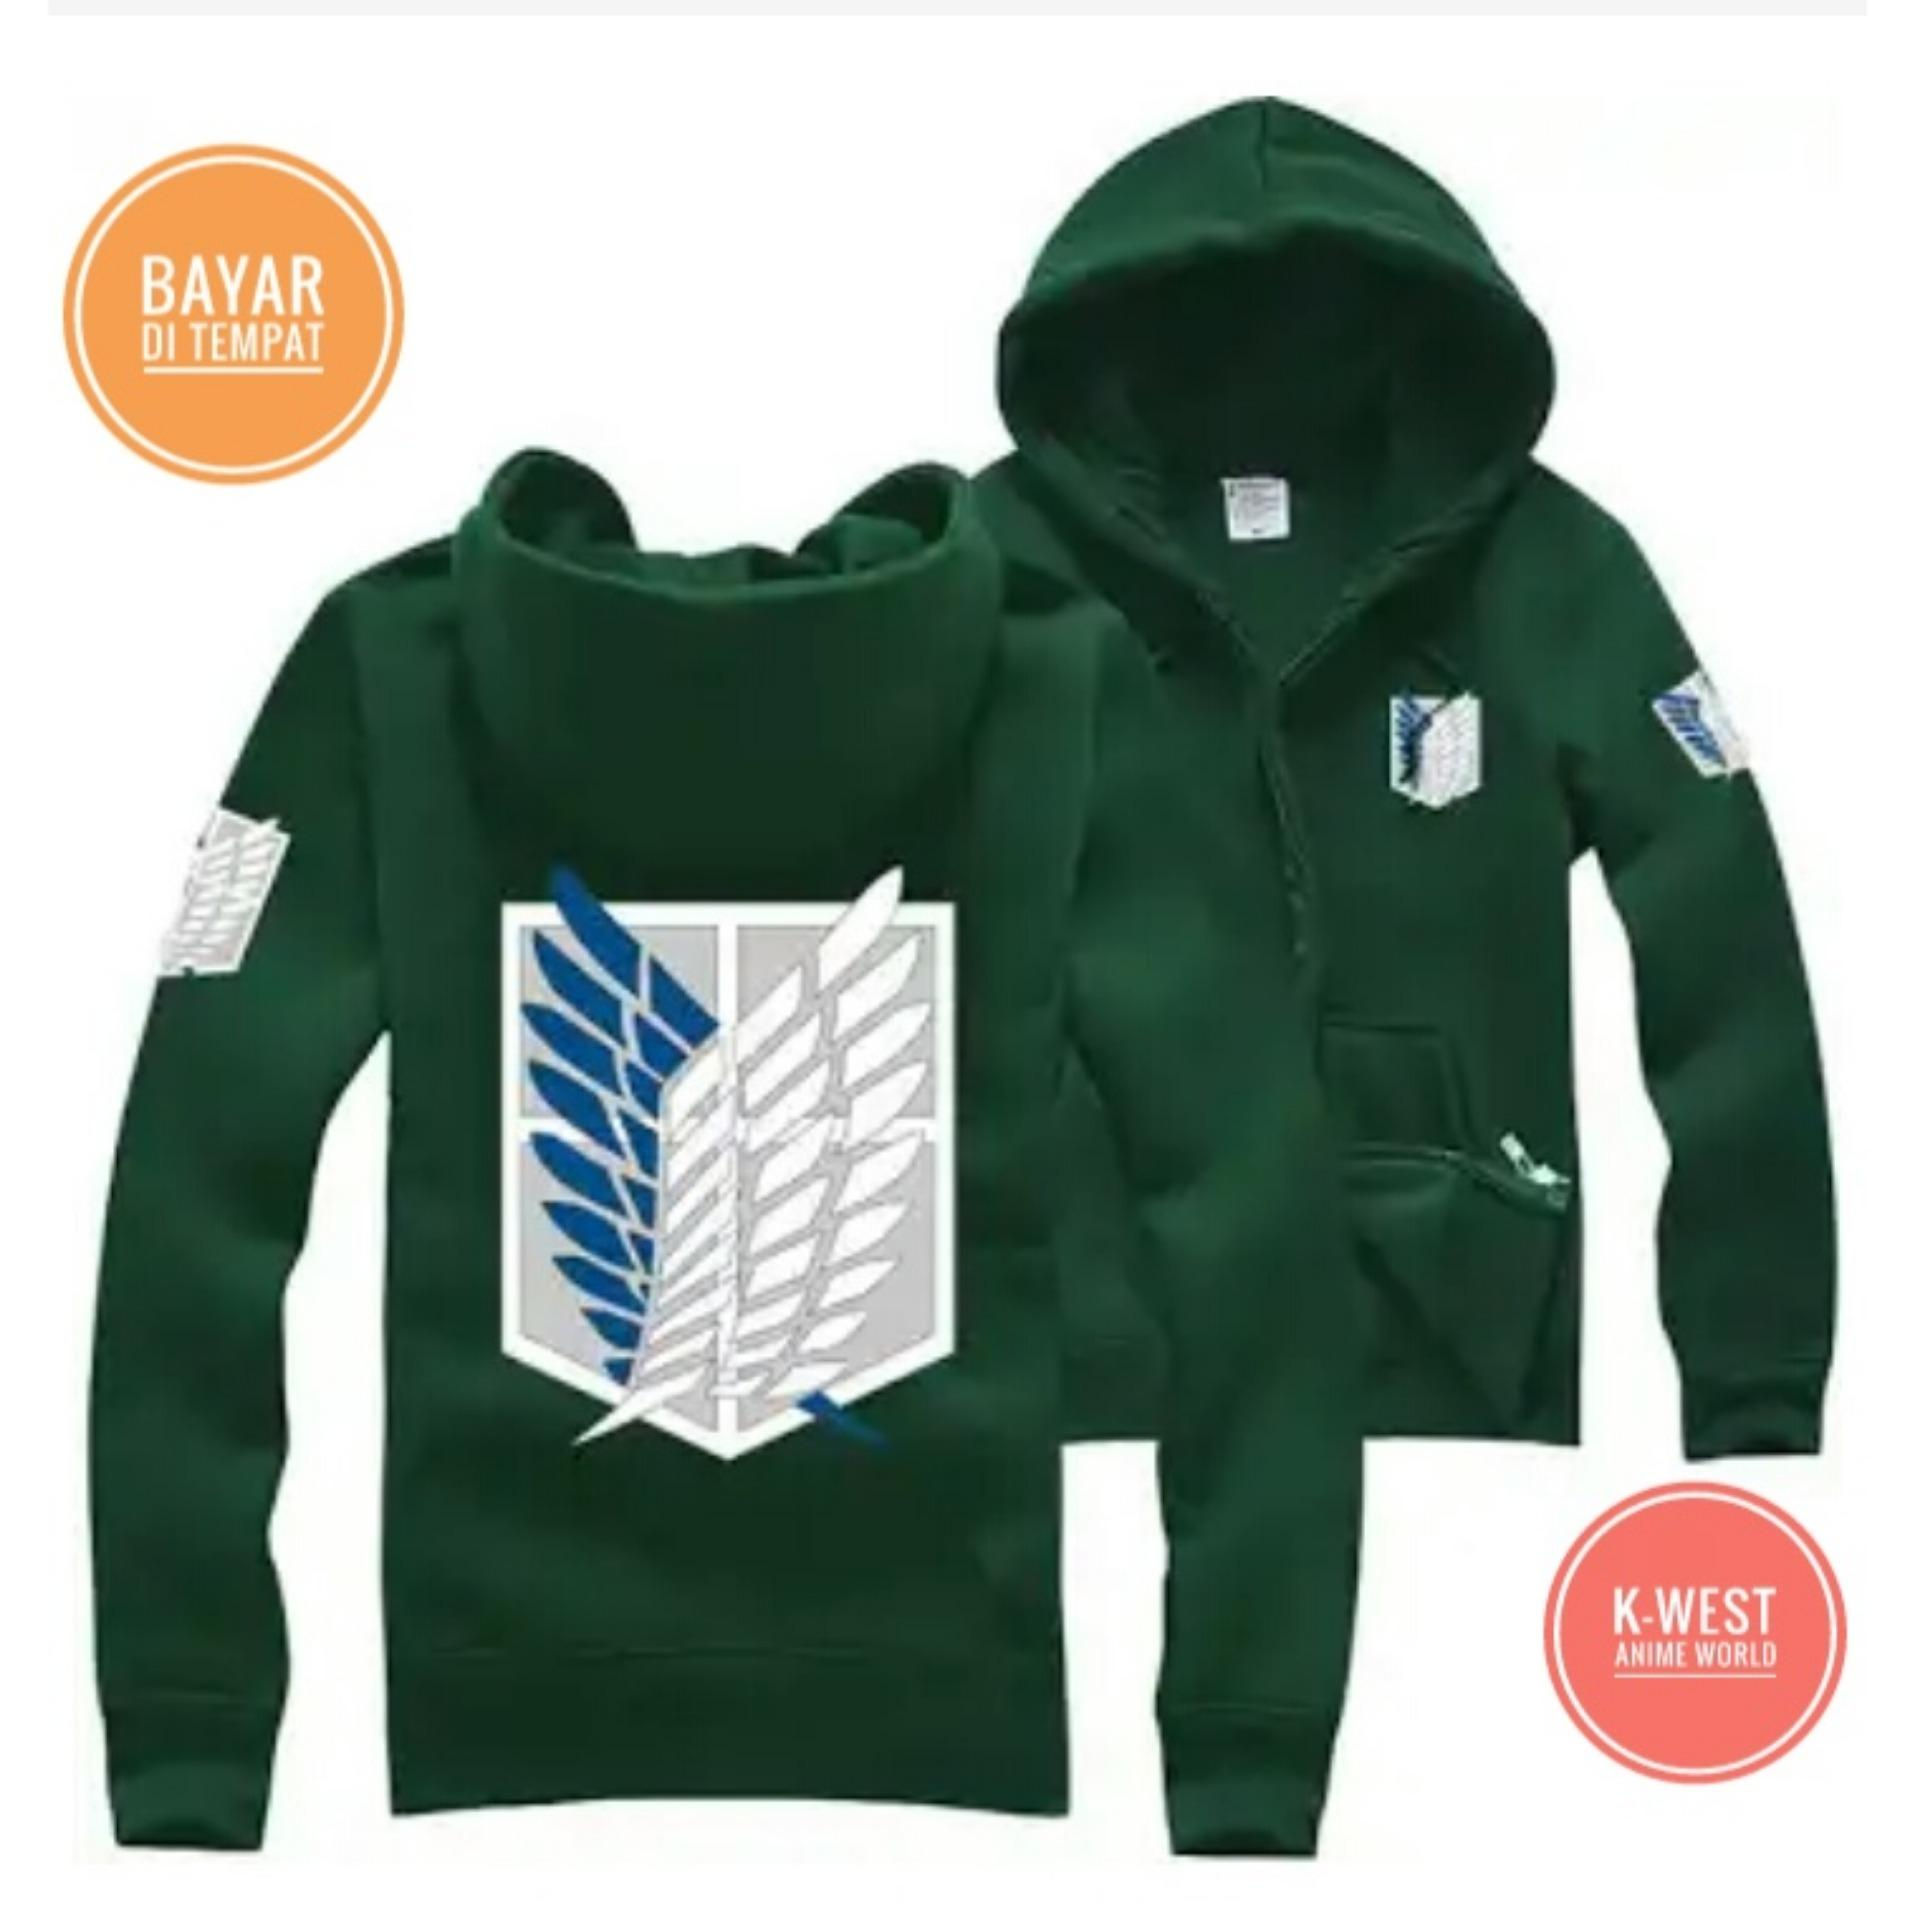 Beli Jaket Anime Attack On Titan Green Hoodie Zipper Best Seller K West Murah